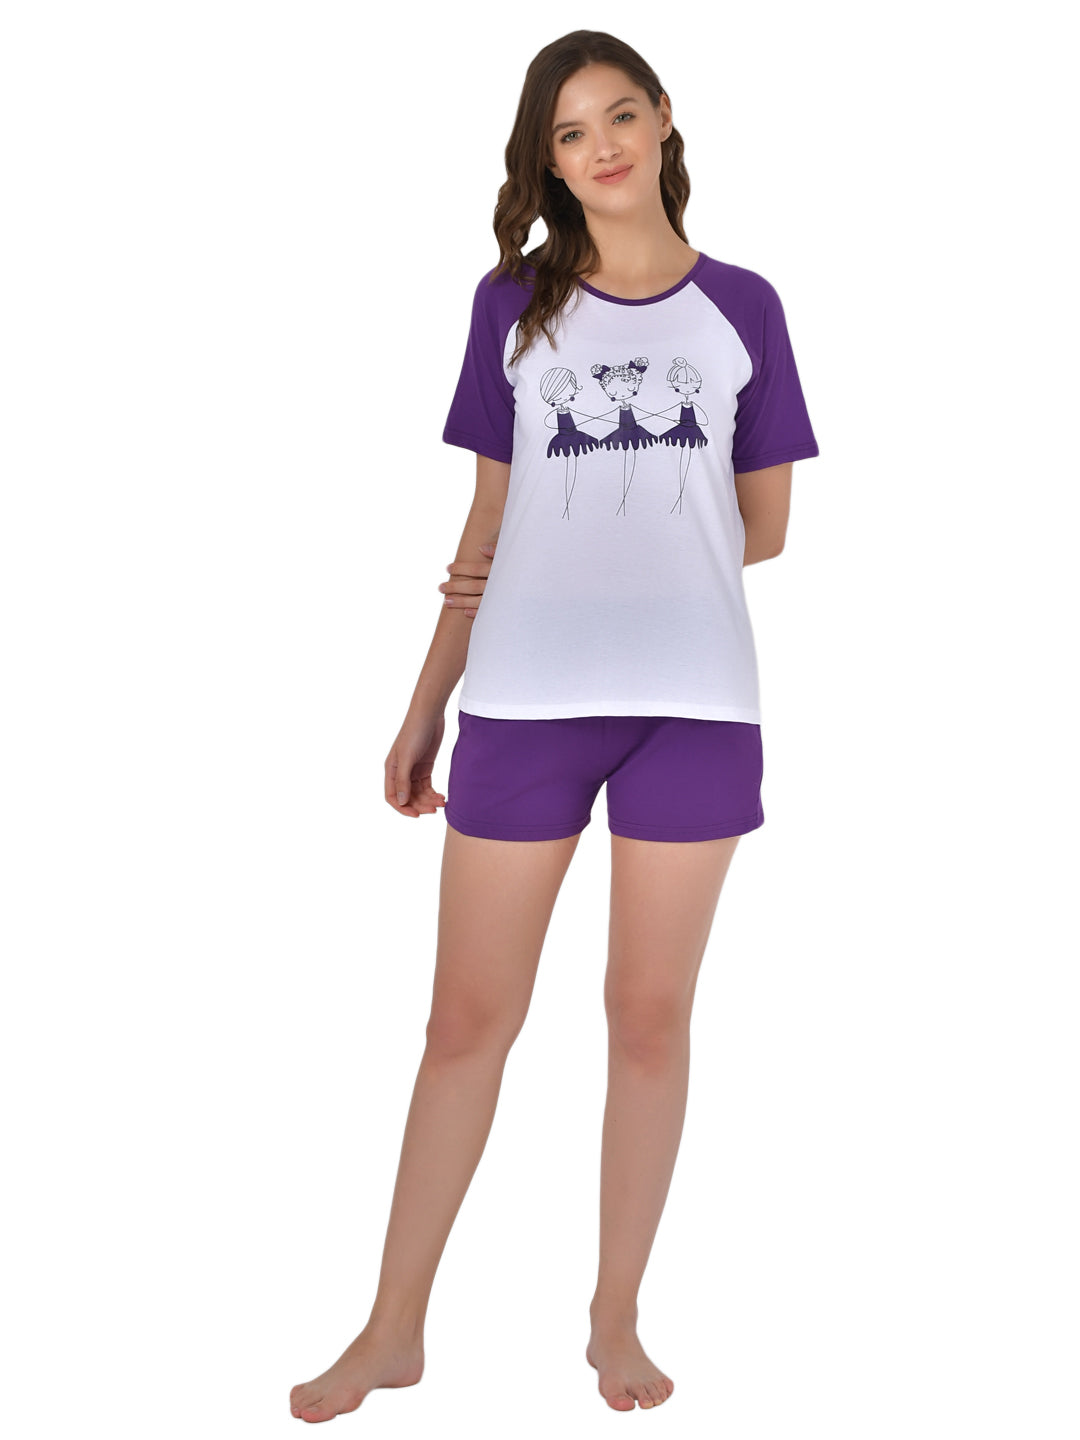 Klamotten Women's White Purple Graphic Printed Top Shorts Set GM01P